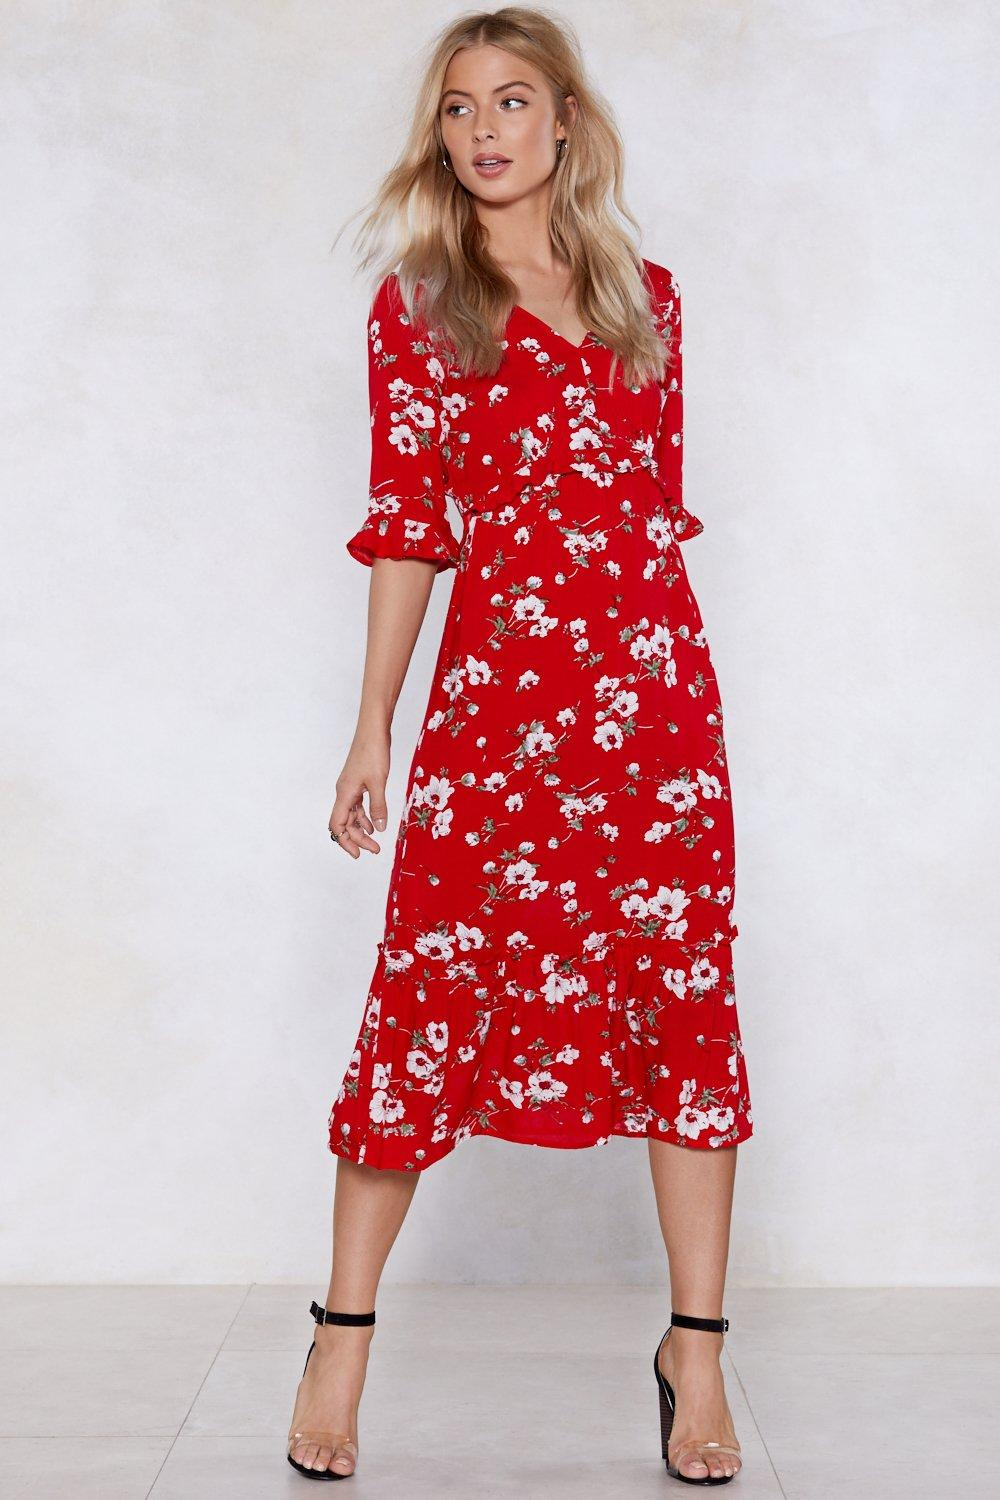 2422256f2d1c1 Are You Floral Right Now Midi Dress | Shop Clothes at Nasty Gal!